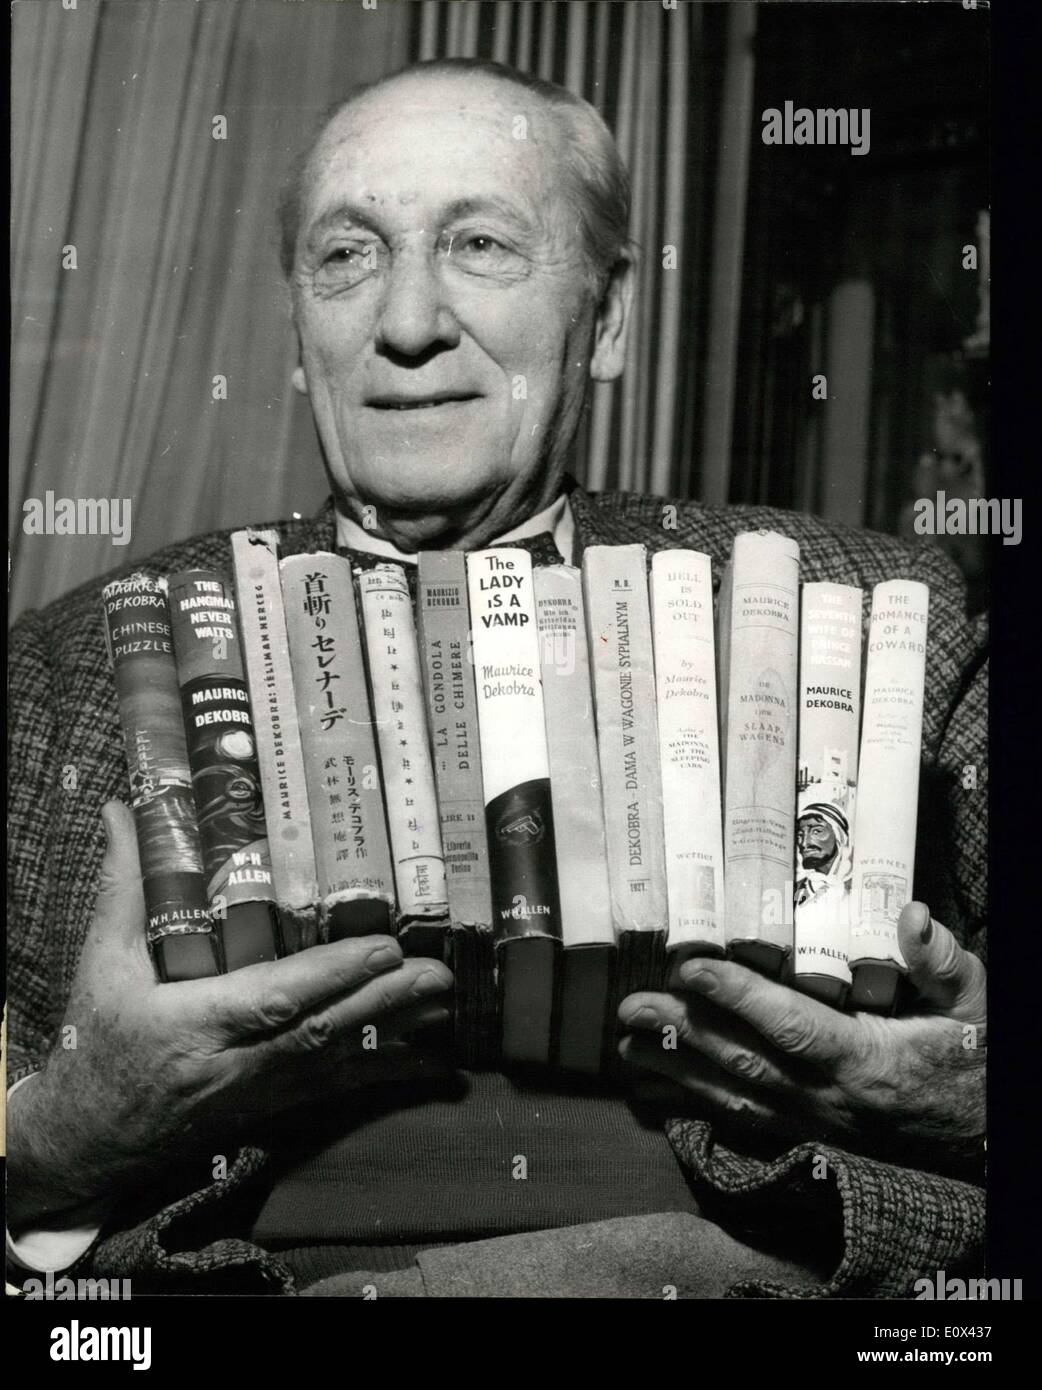 Mar. 18, 1965 - Maurice Dekobra Beats a record: 90 Novels Translated into Twenty Languages. Maurice Dekobra, the famous French Novelist, has set up a record: His 90th Novel has just benl Released and his books have been translated into Twenty :Languages, Chinese and Hebrew included. Picture shows: Maurice Dekobra holding some of his books. - Stock Image